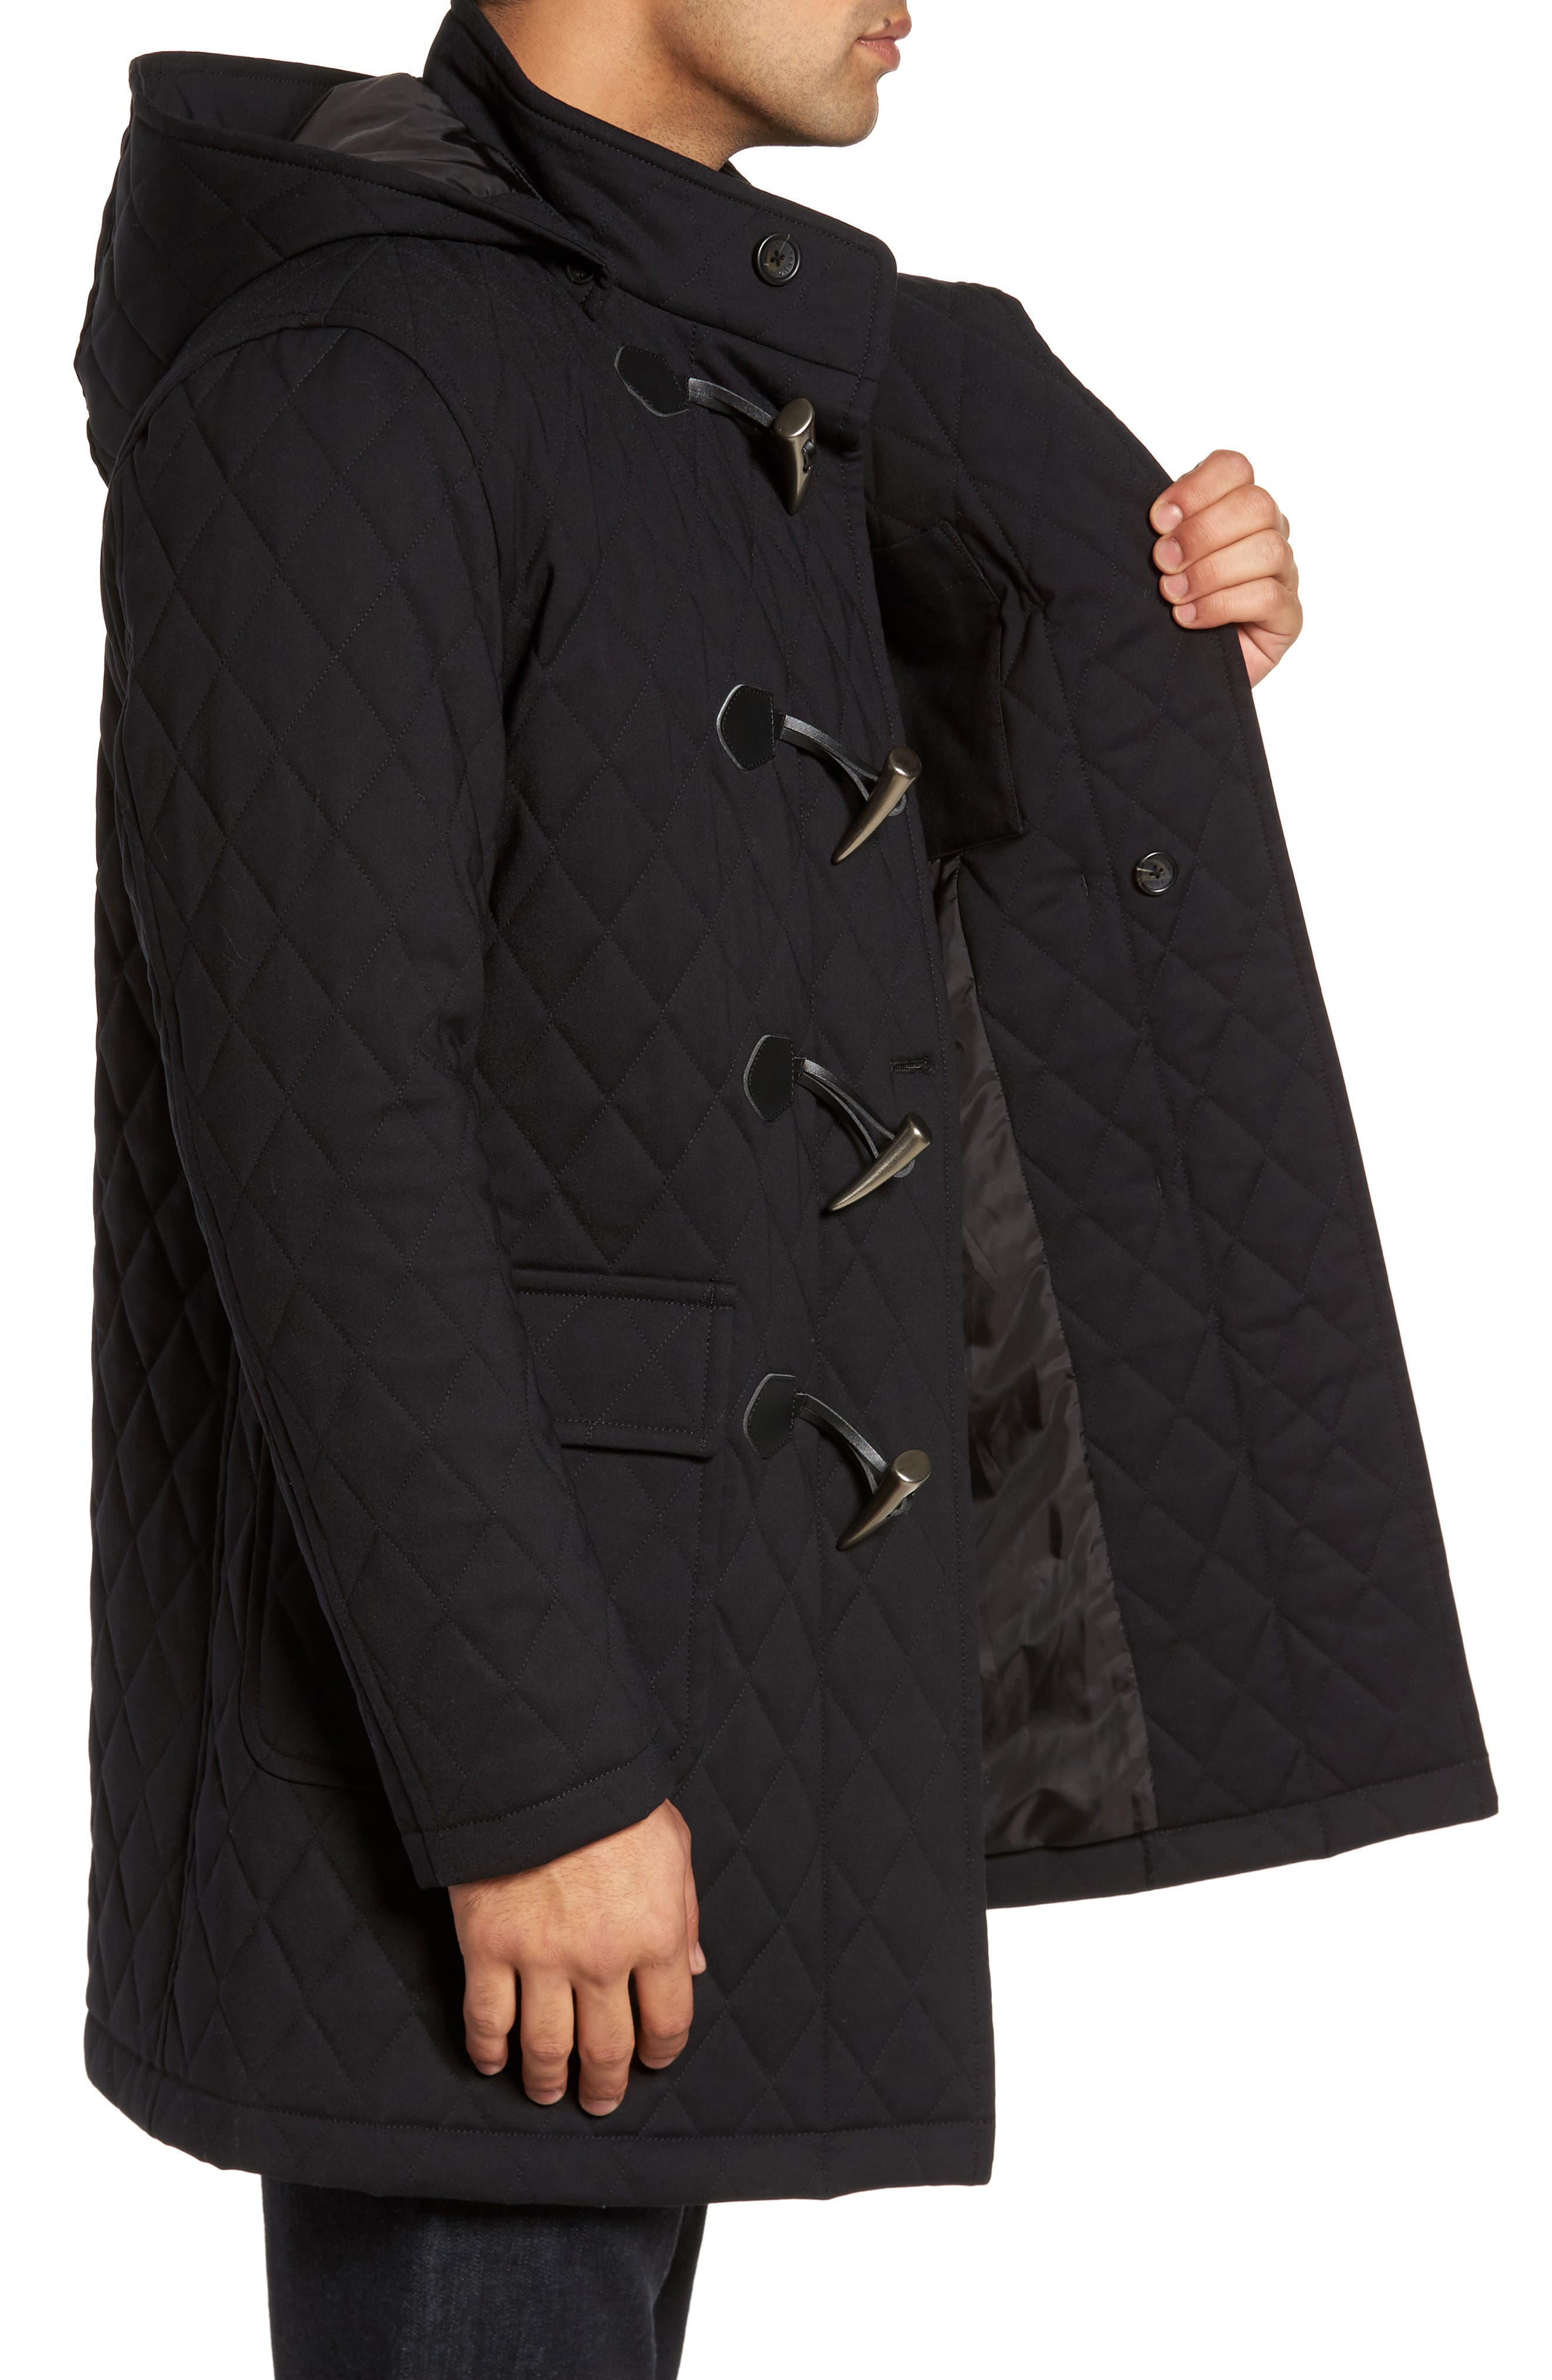 Francisco Quilted Duffle Coat,                             Alternate thumbnail 3, color,                             009